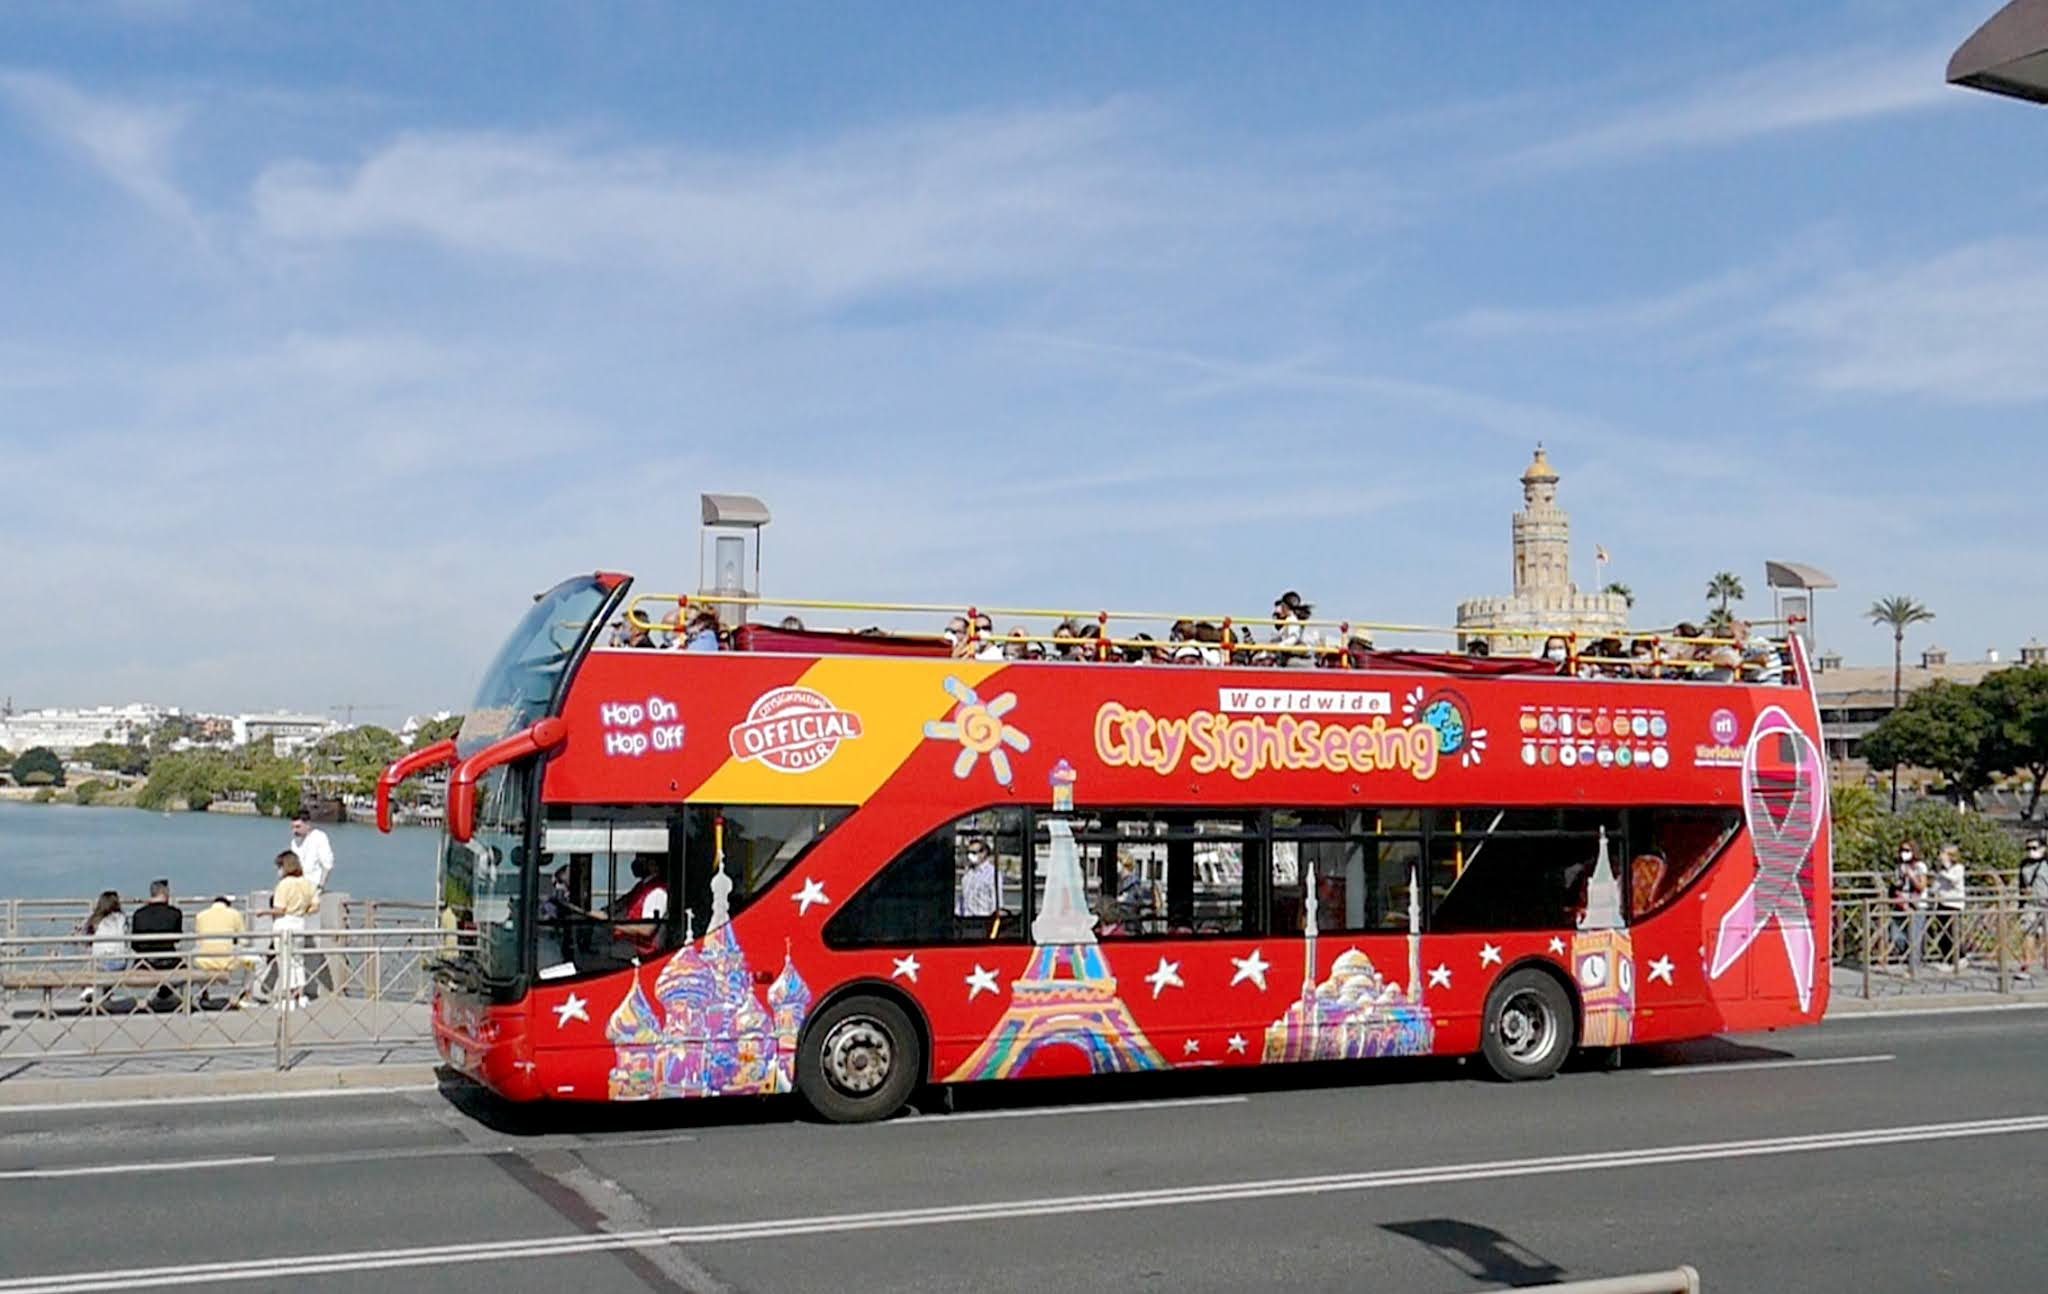 bus city sightseeing sevilla lazo rosa simbolo cancer mama